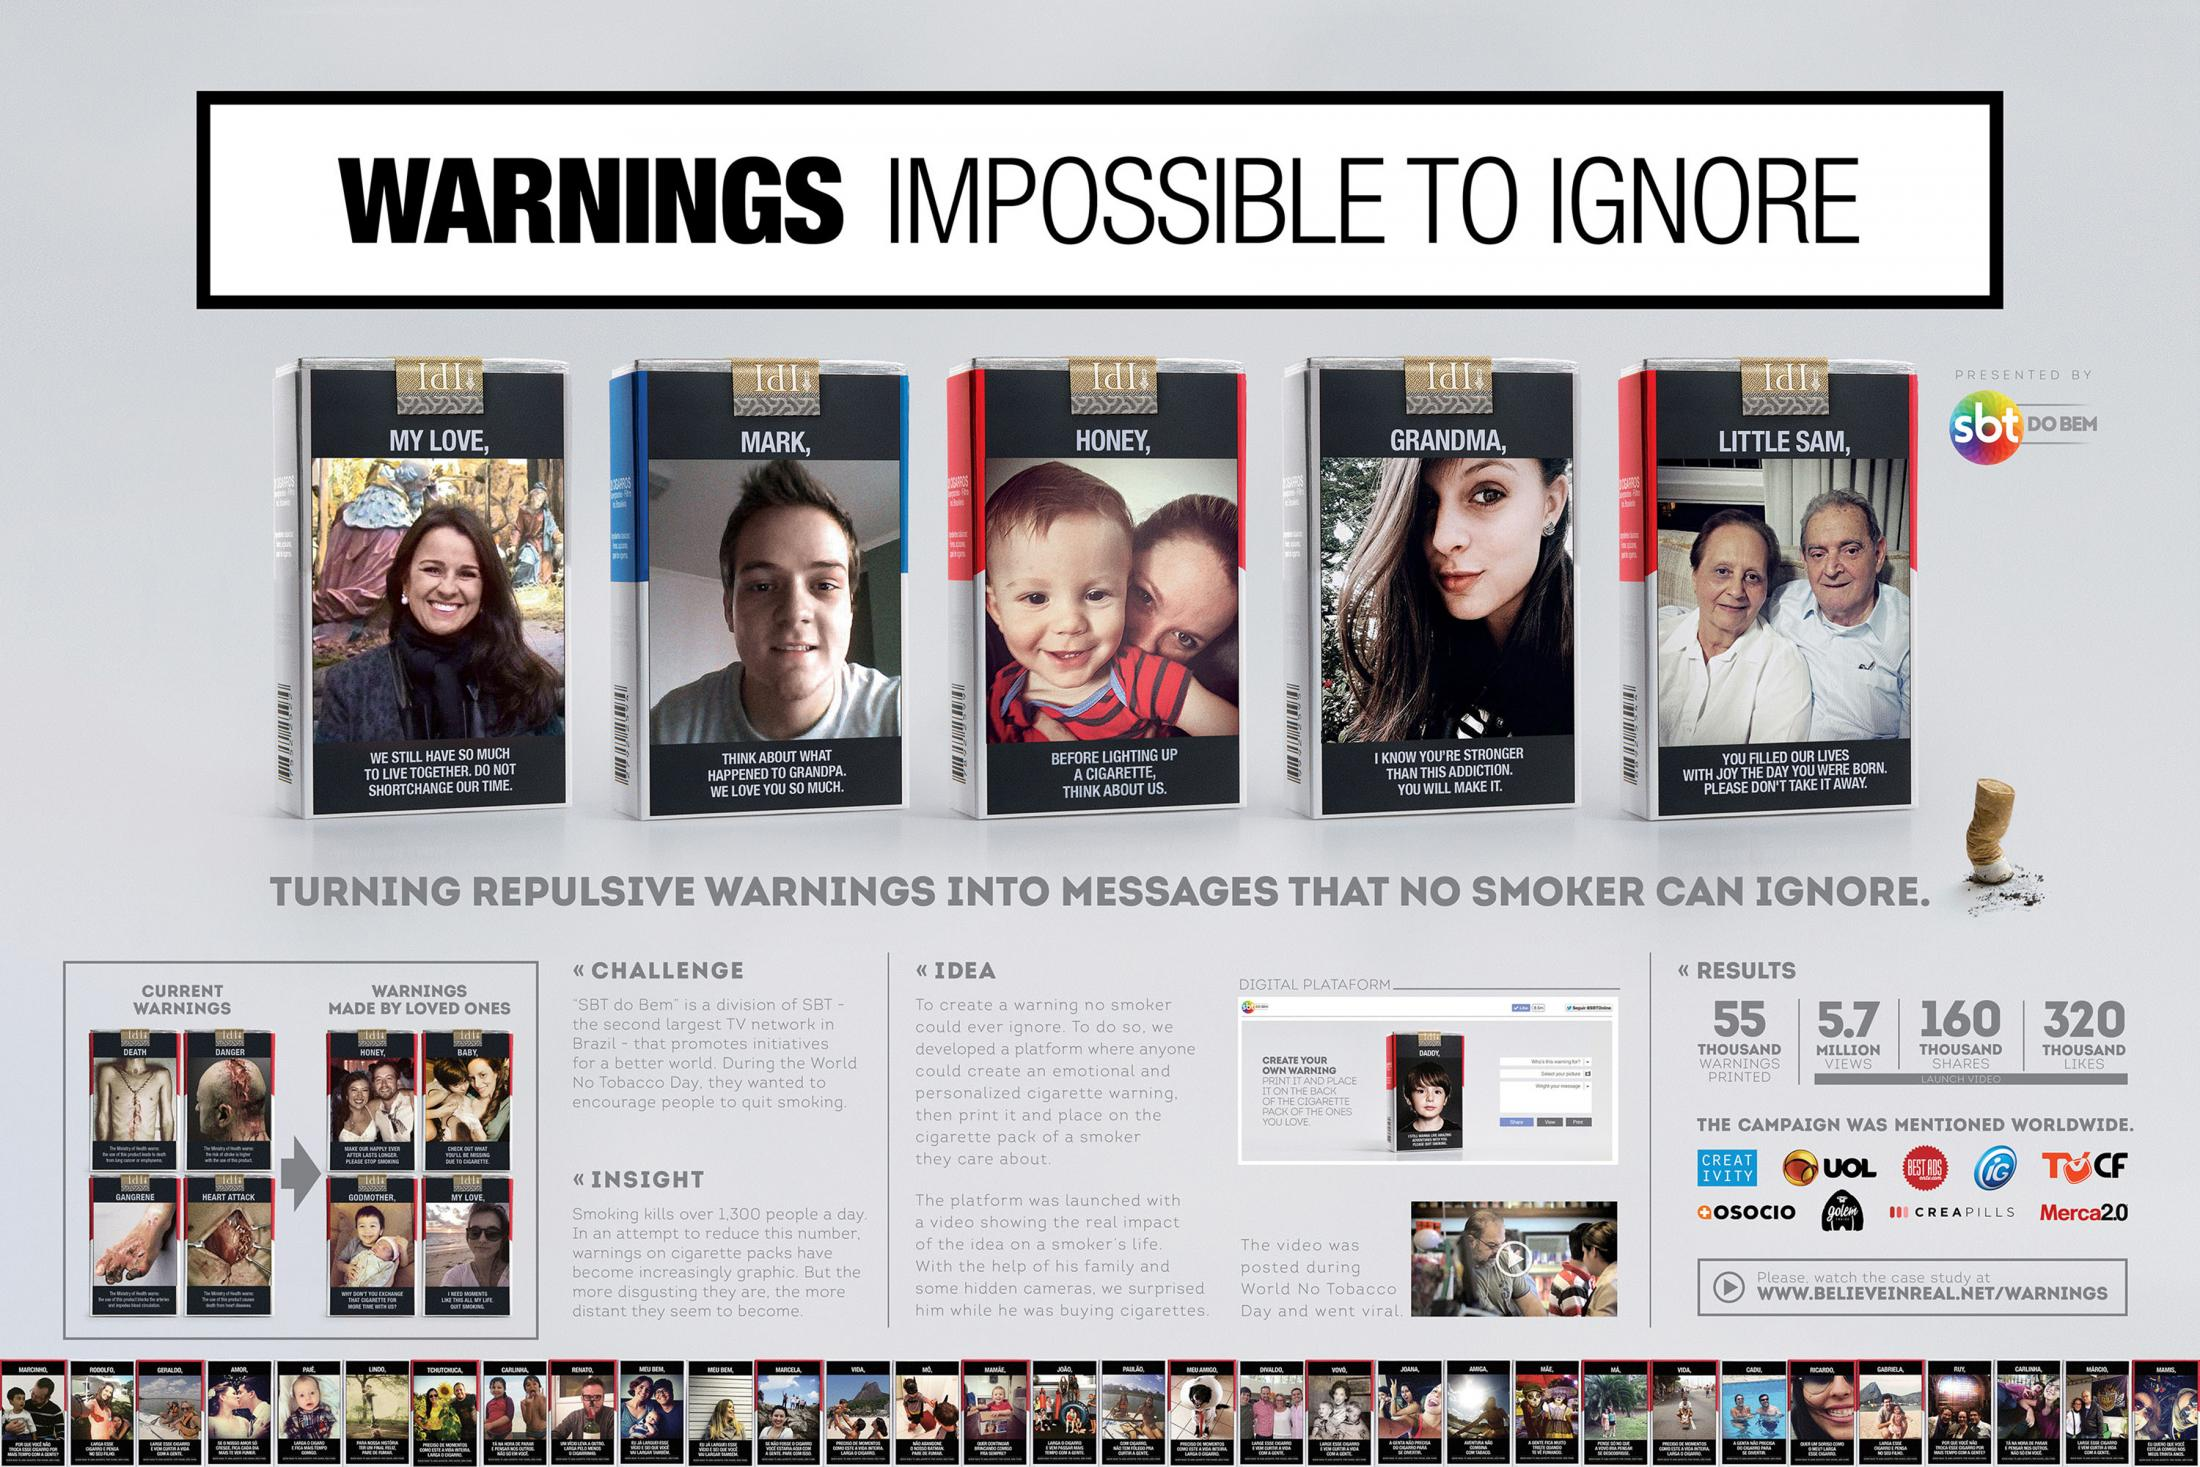 Thumbnail for Warnings Impossible To Ignore